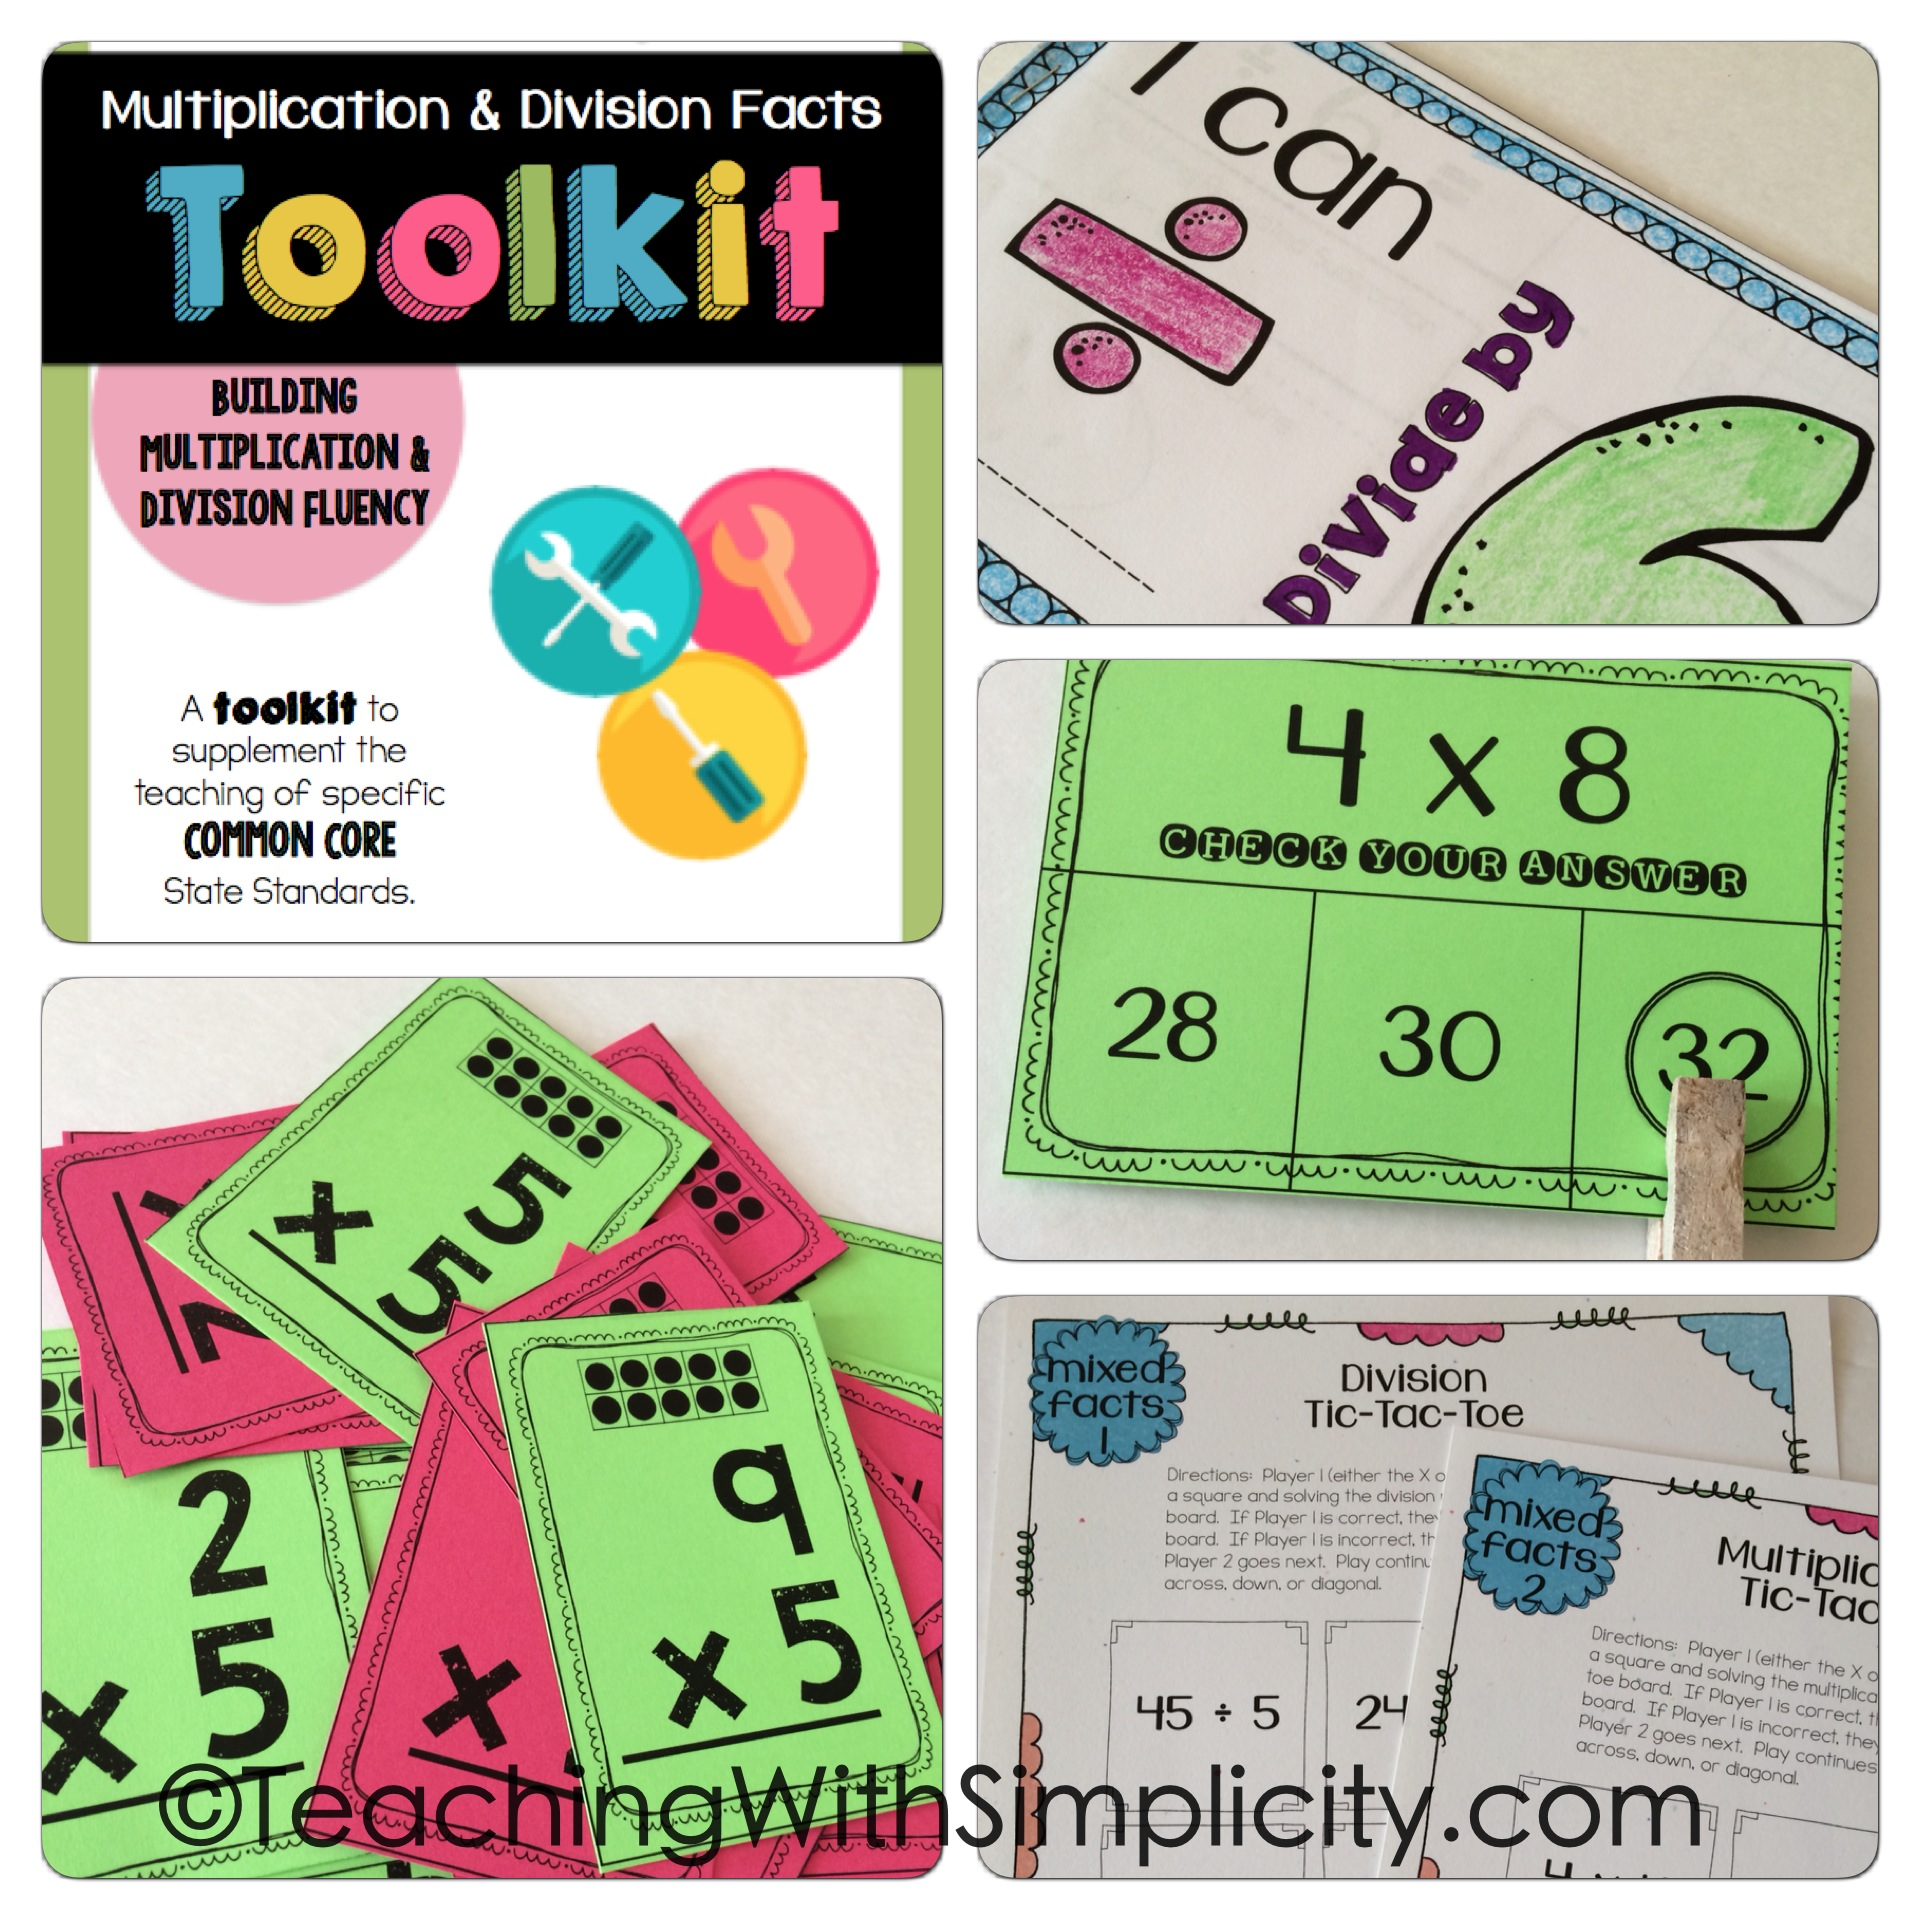 10 Ways to Practice Multiplication Facts - Teaching With Simplicity